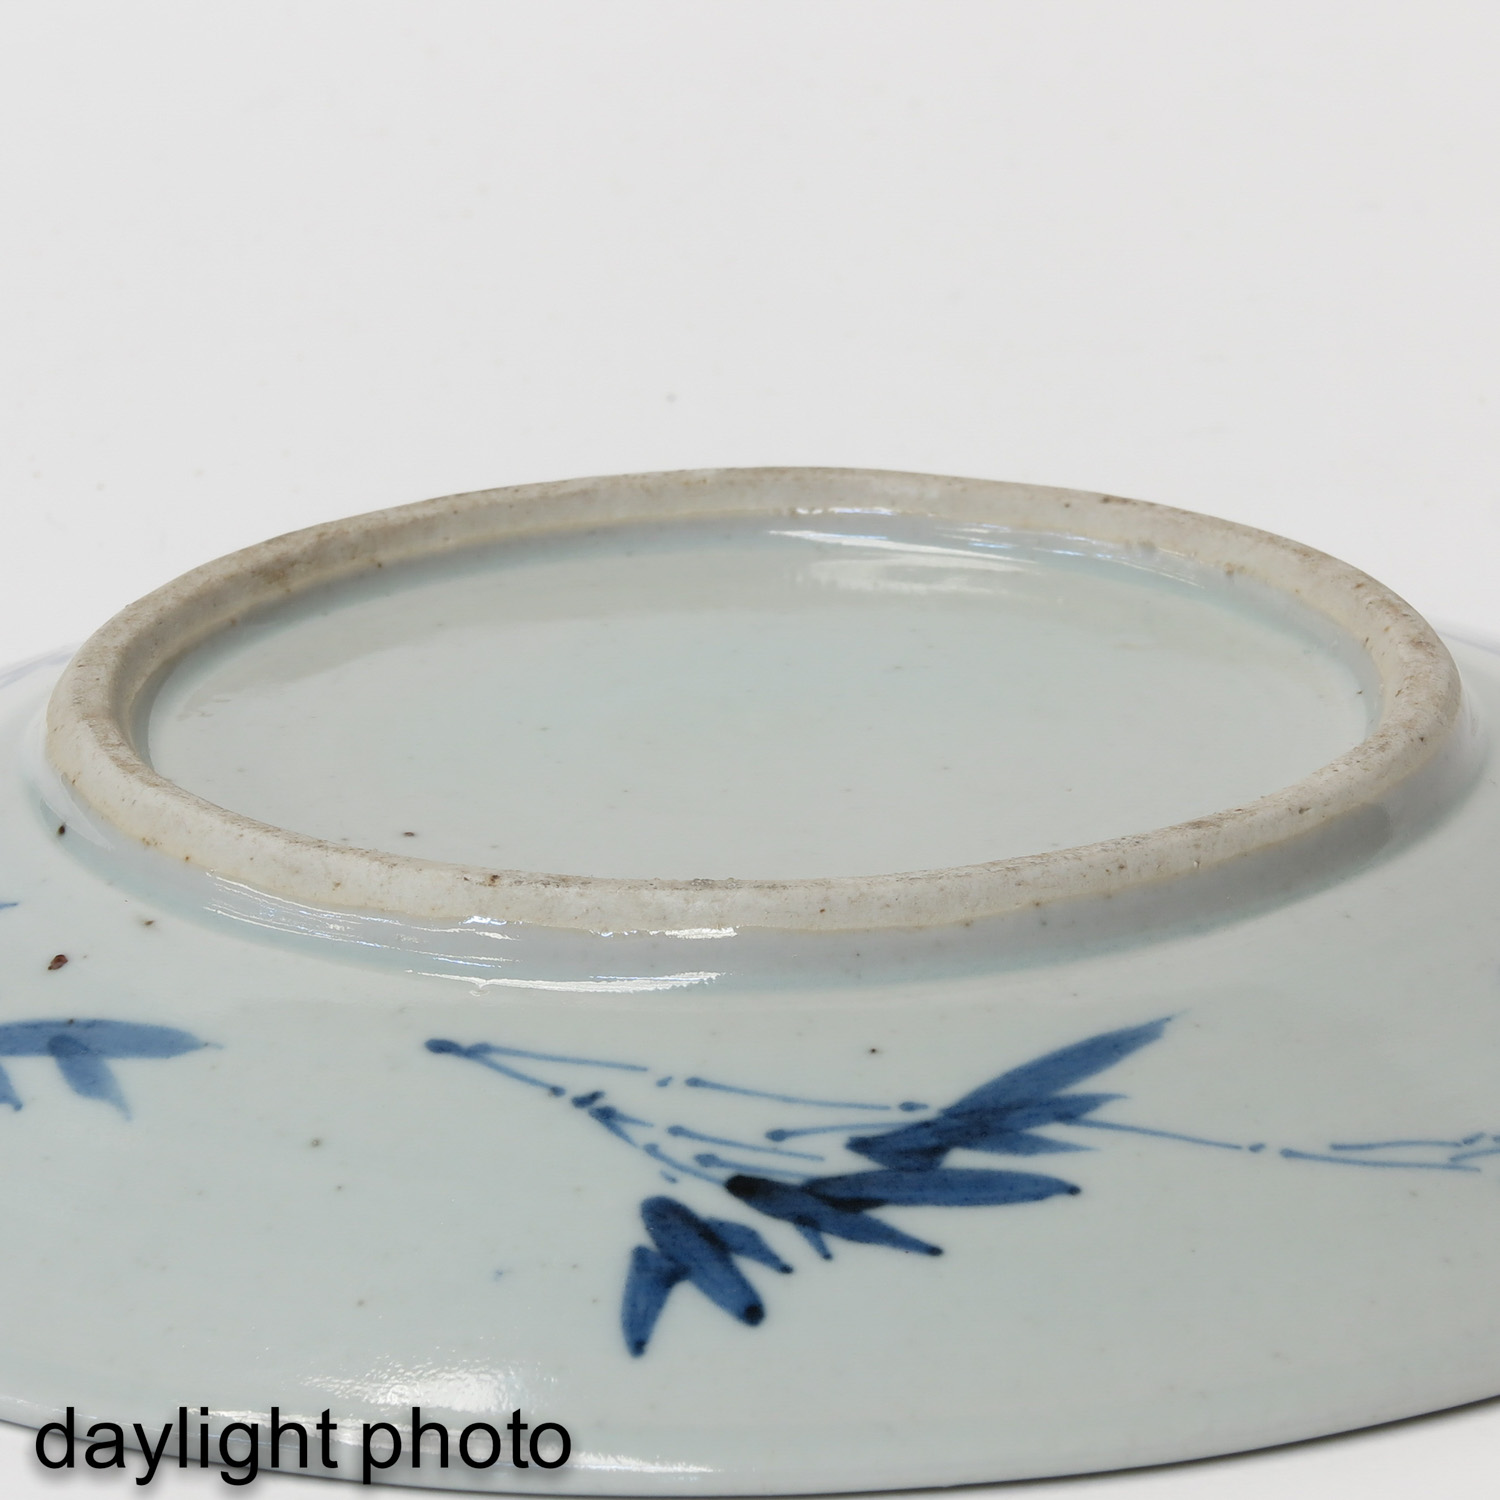 A Blue and White Dish - Image 4 of 5